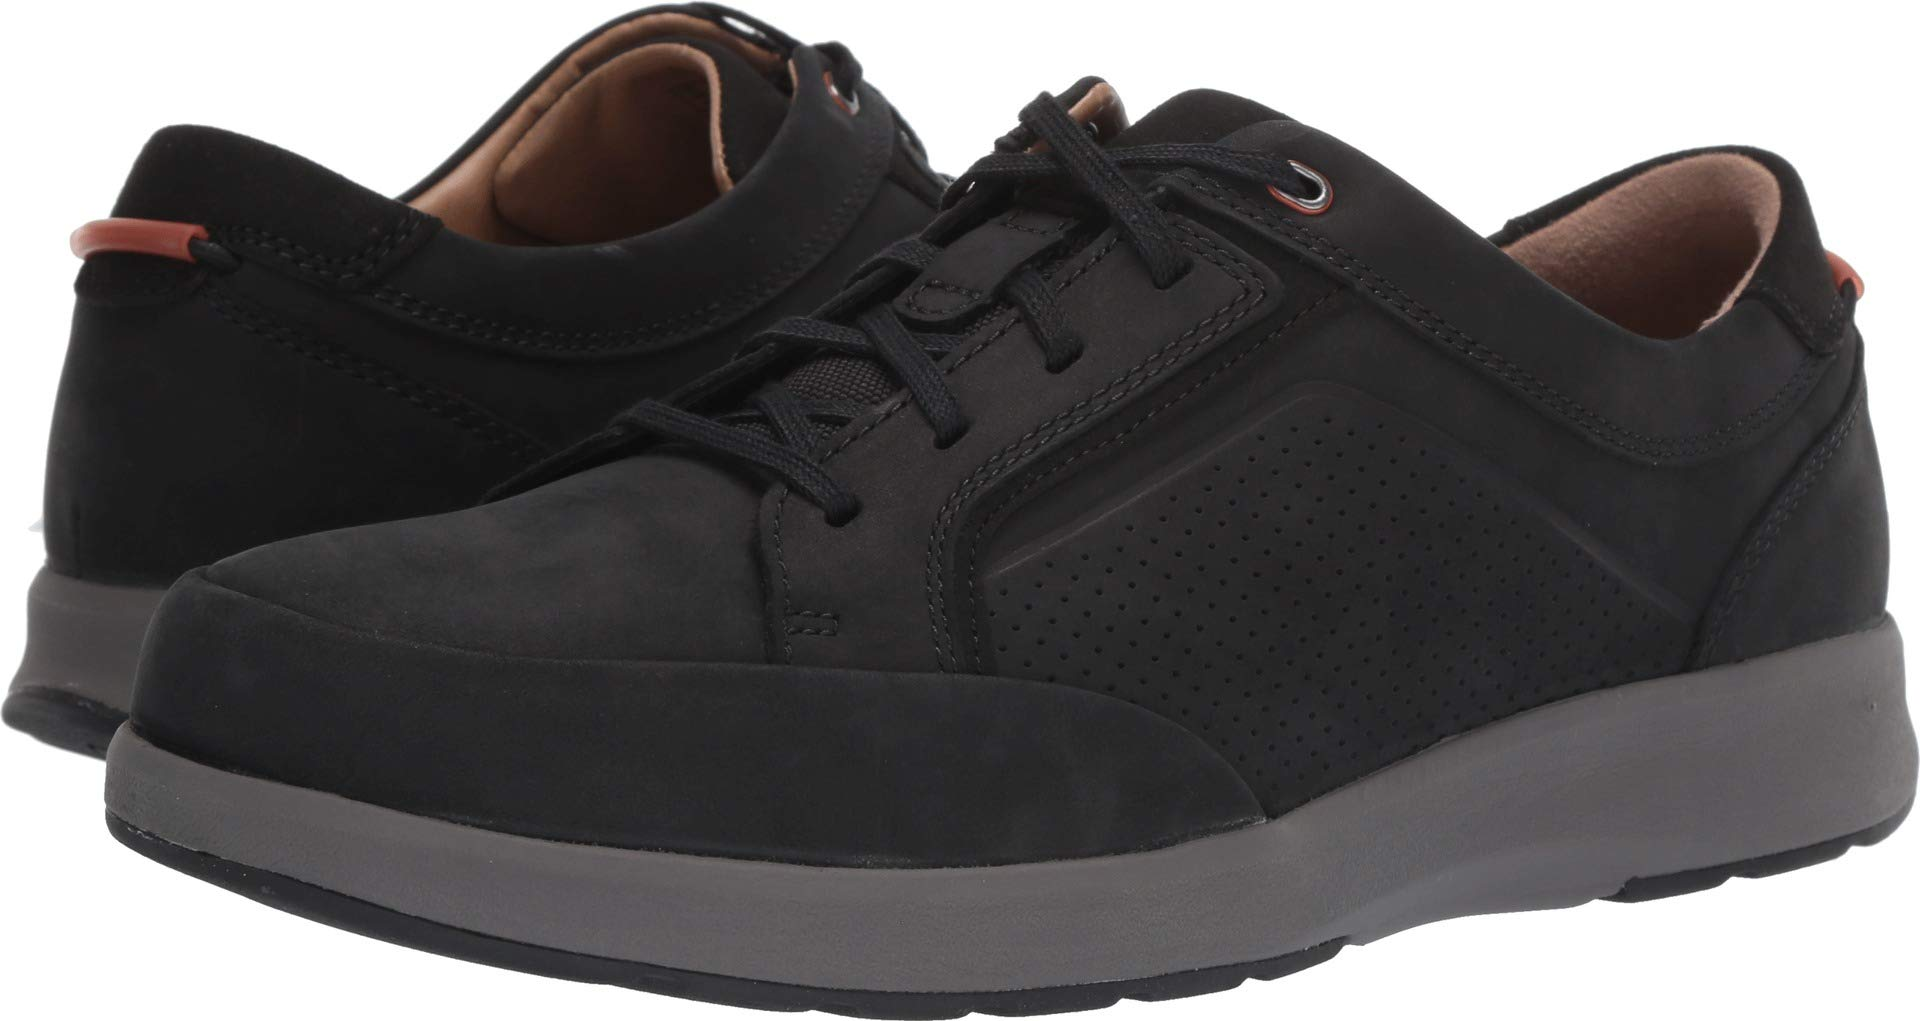 CLARKS Men's, Un Trail Form Casual Black Nubuck 8 W by CLARKS